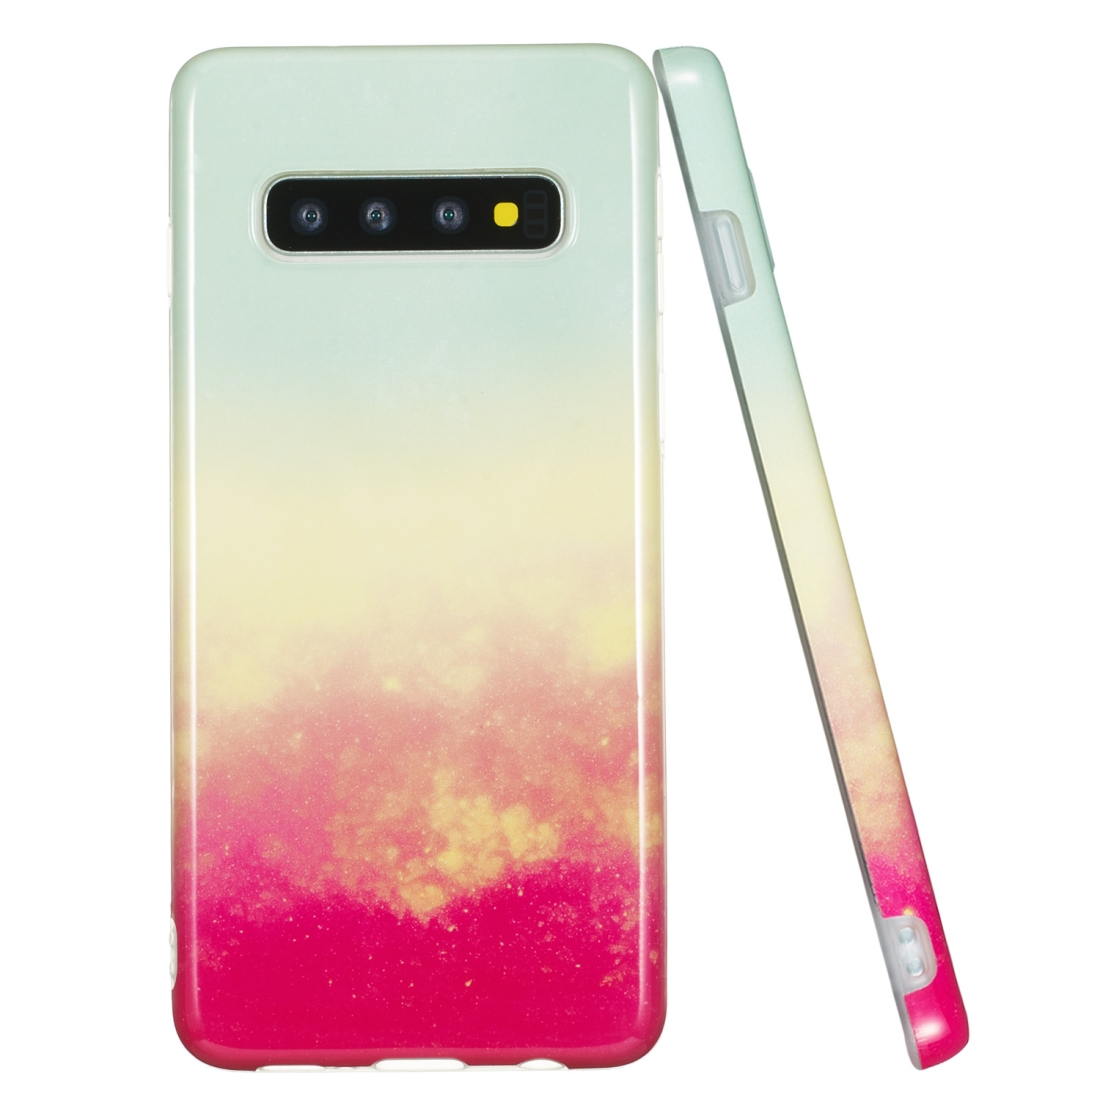 TPU Protective Case For Galaxy S10 Plus (Fire Cloud)